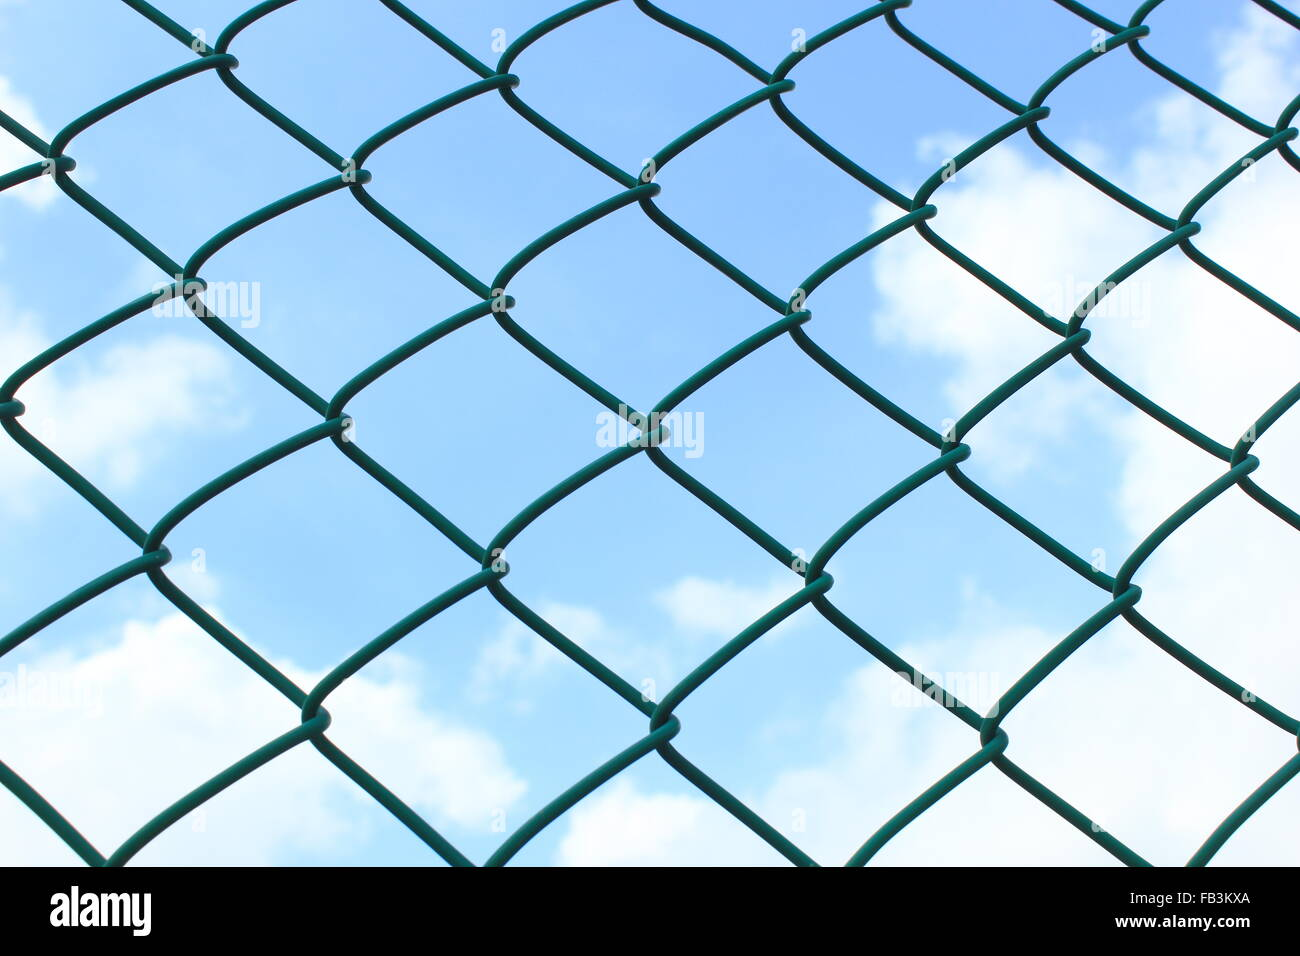 wire fence on sky background during the daytime - Stock Image